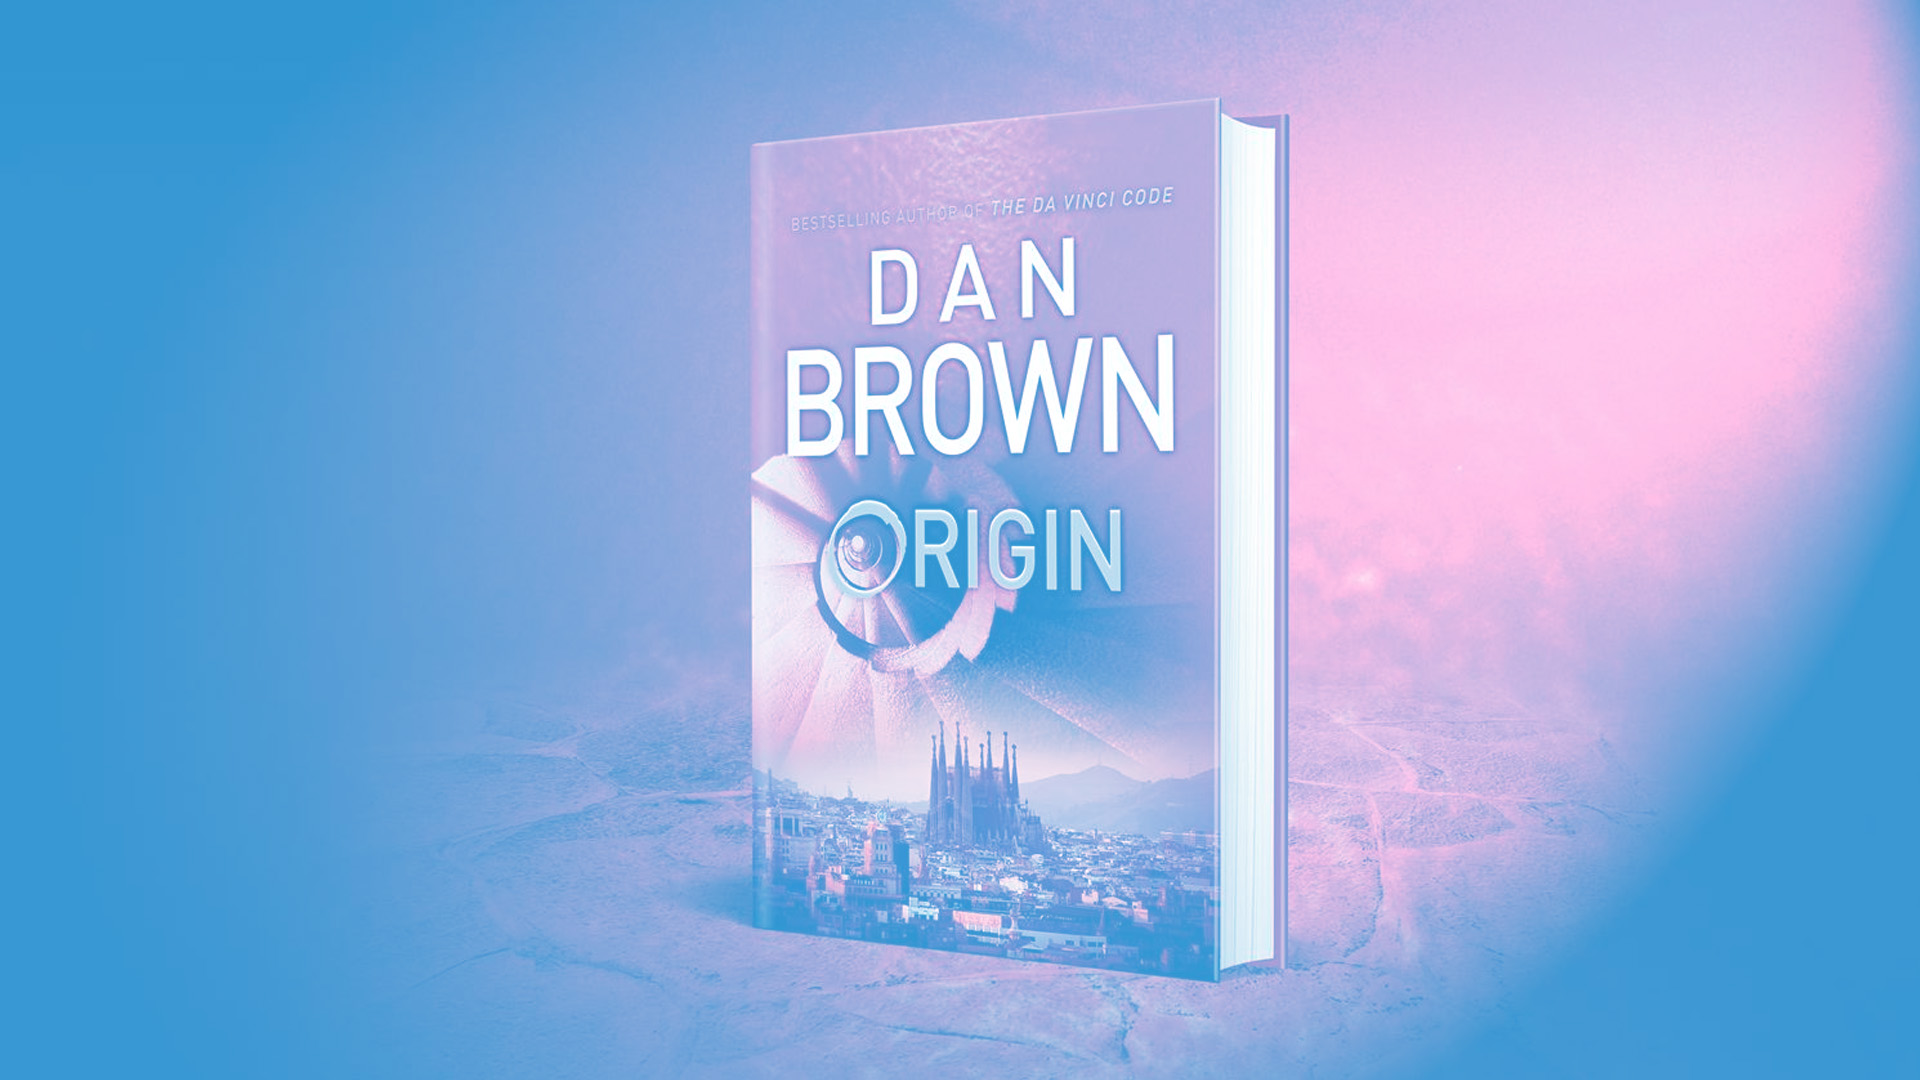 Why I Get Excited When a New Dan Brown Book Drops